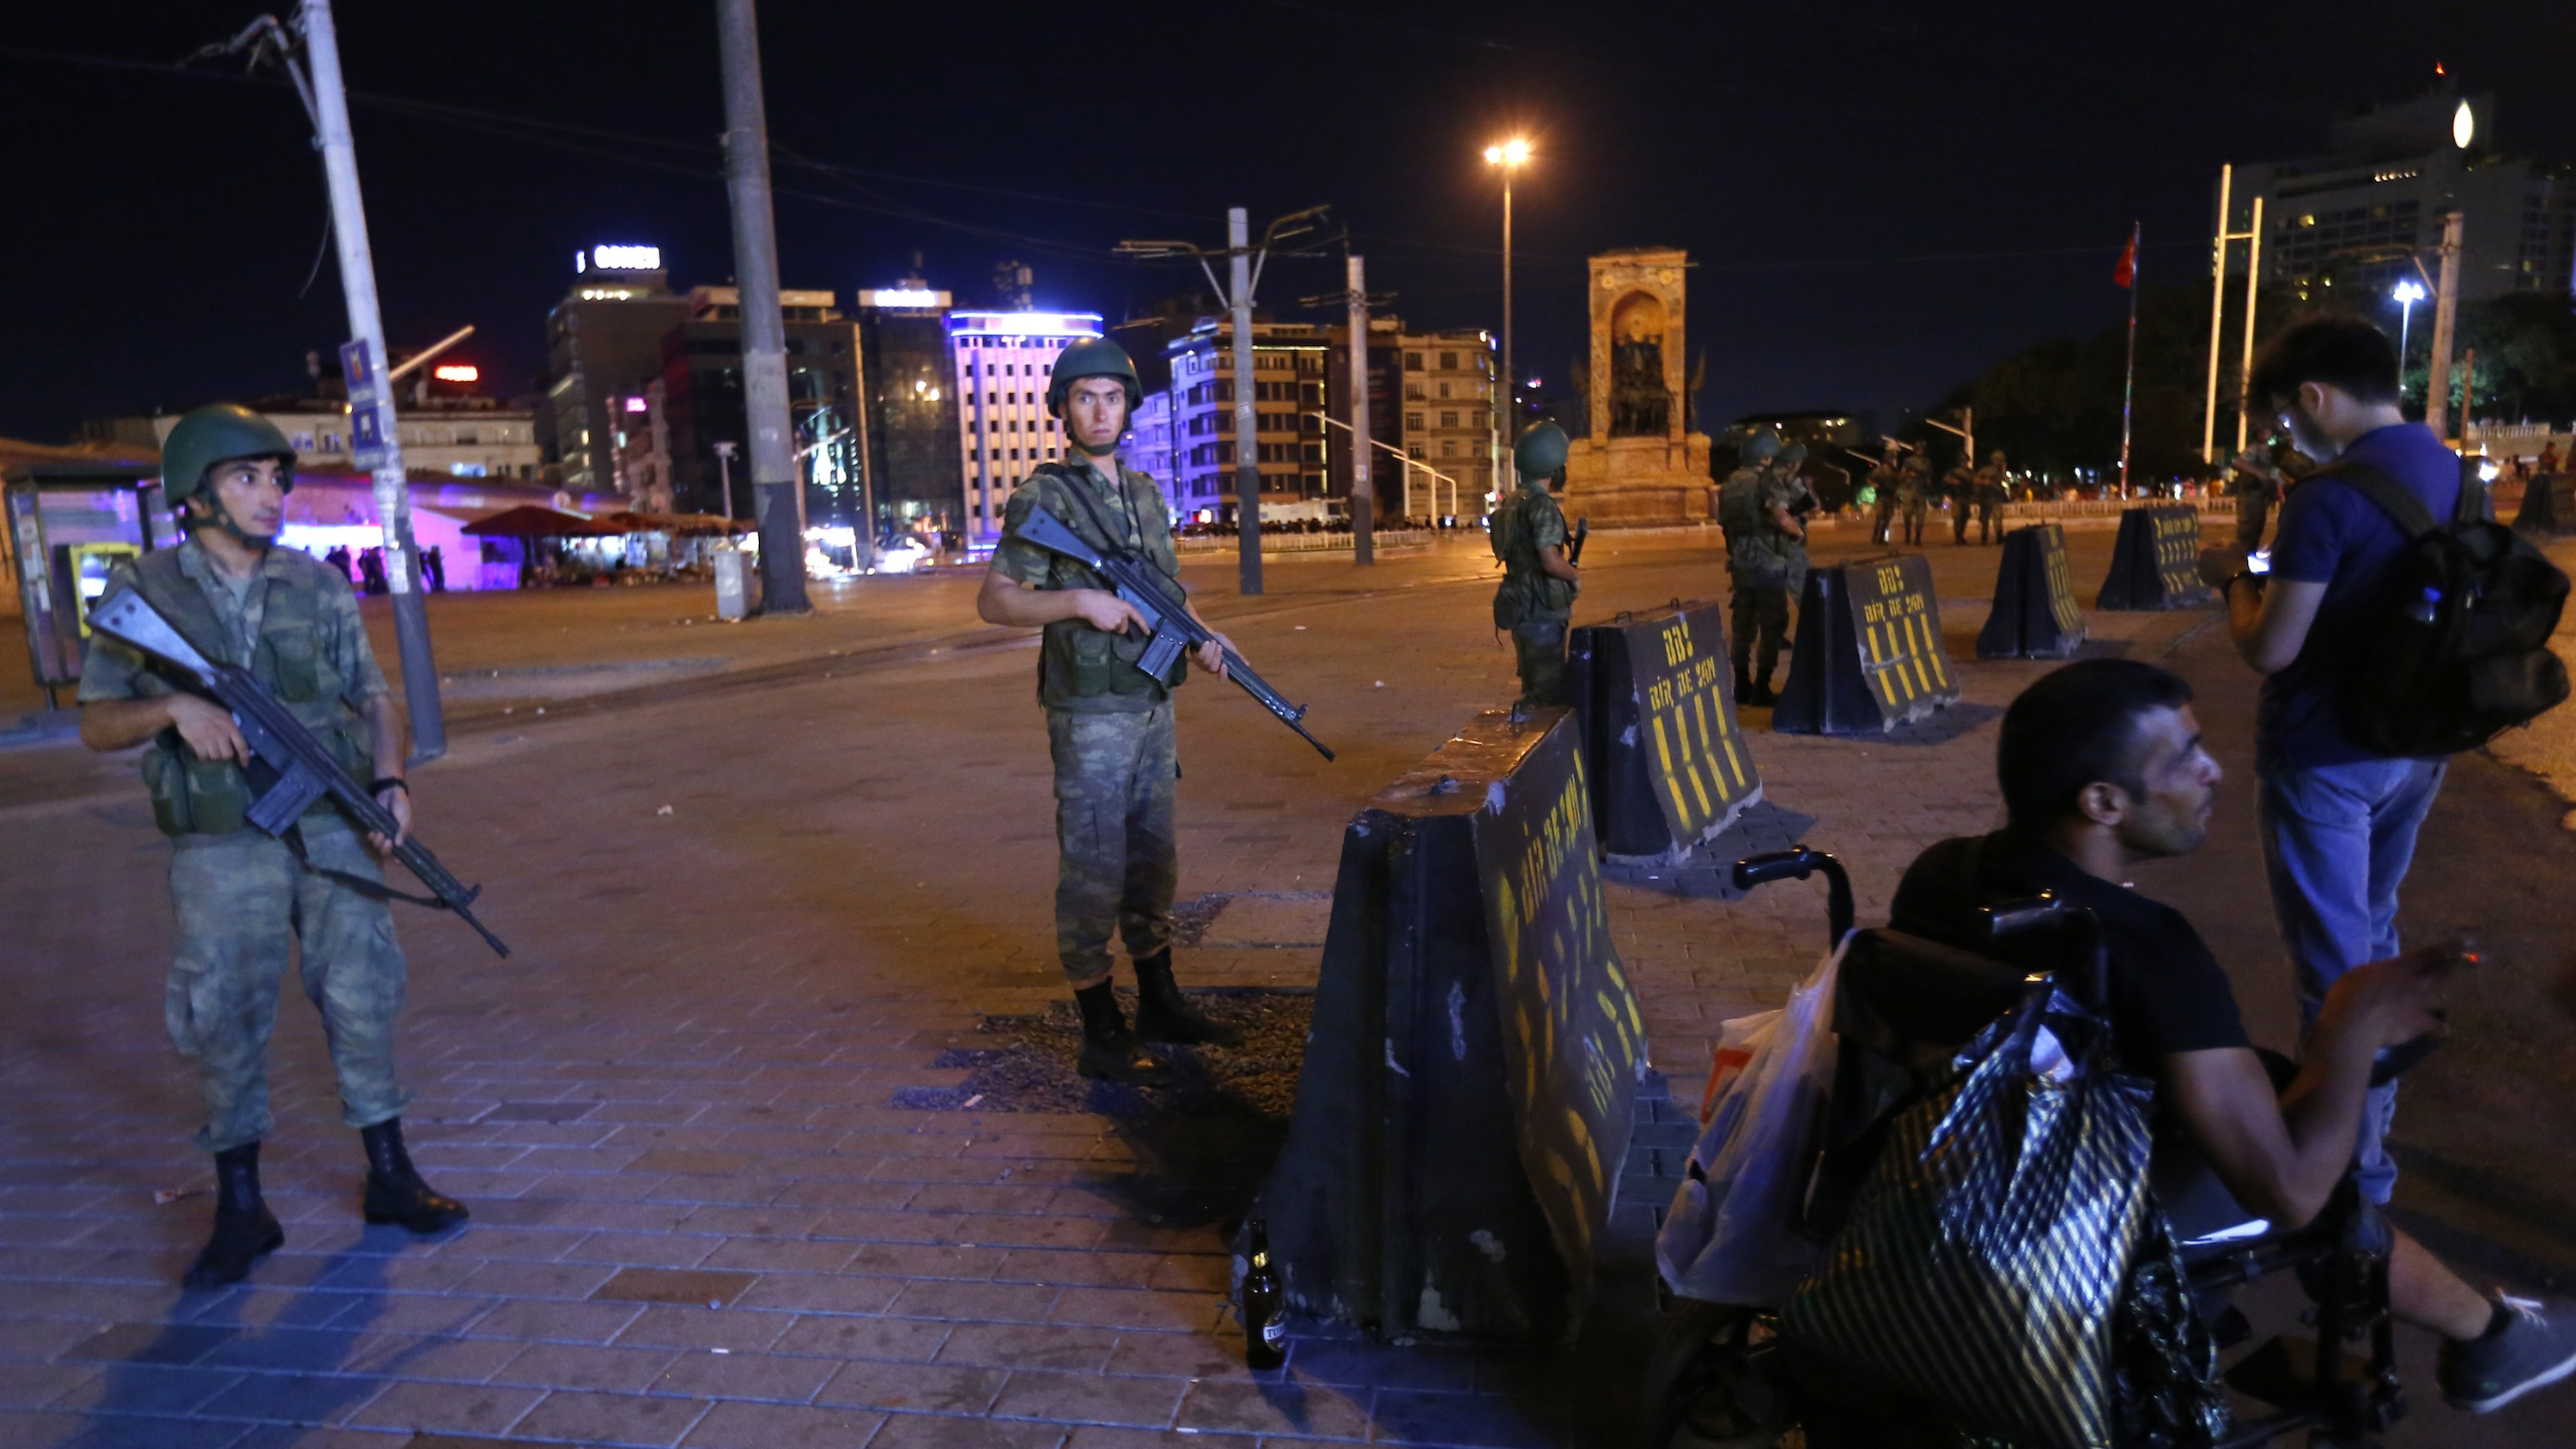 Turkish military stand guard near Taksim Square in Istanbul following a coup against the government of president Erdogan.